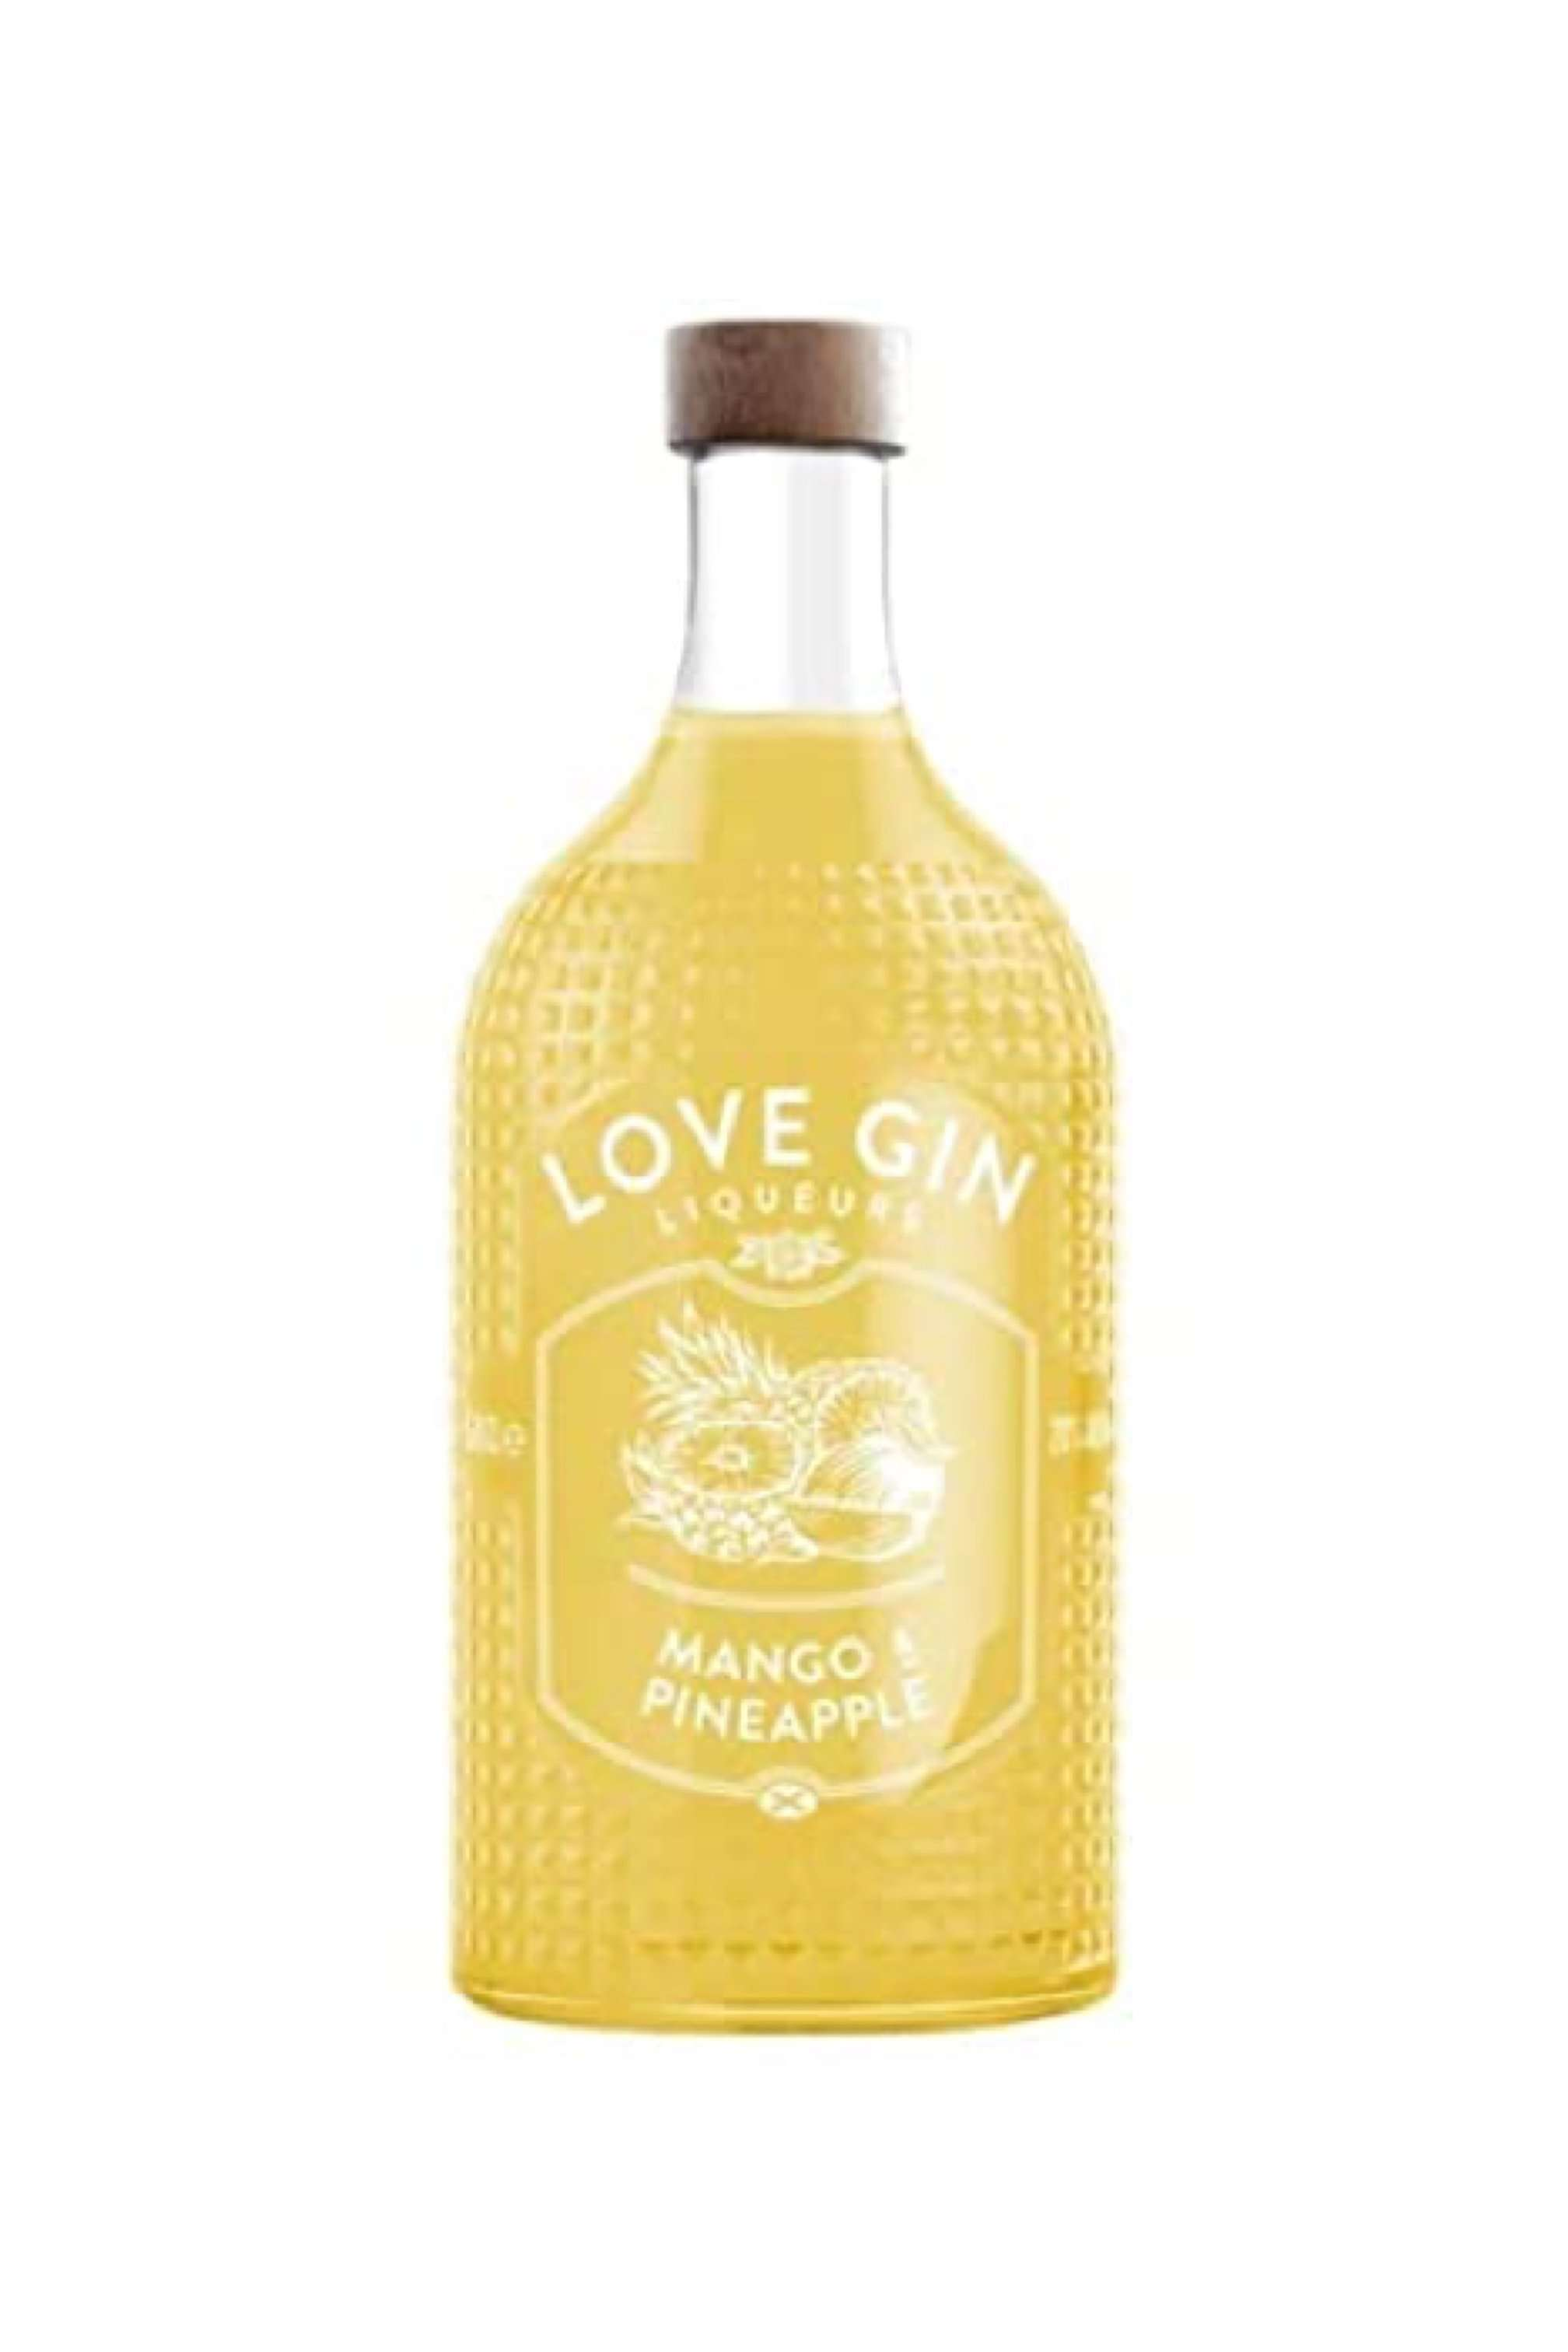 Eden Mill Mango & Pineapple Liqueur